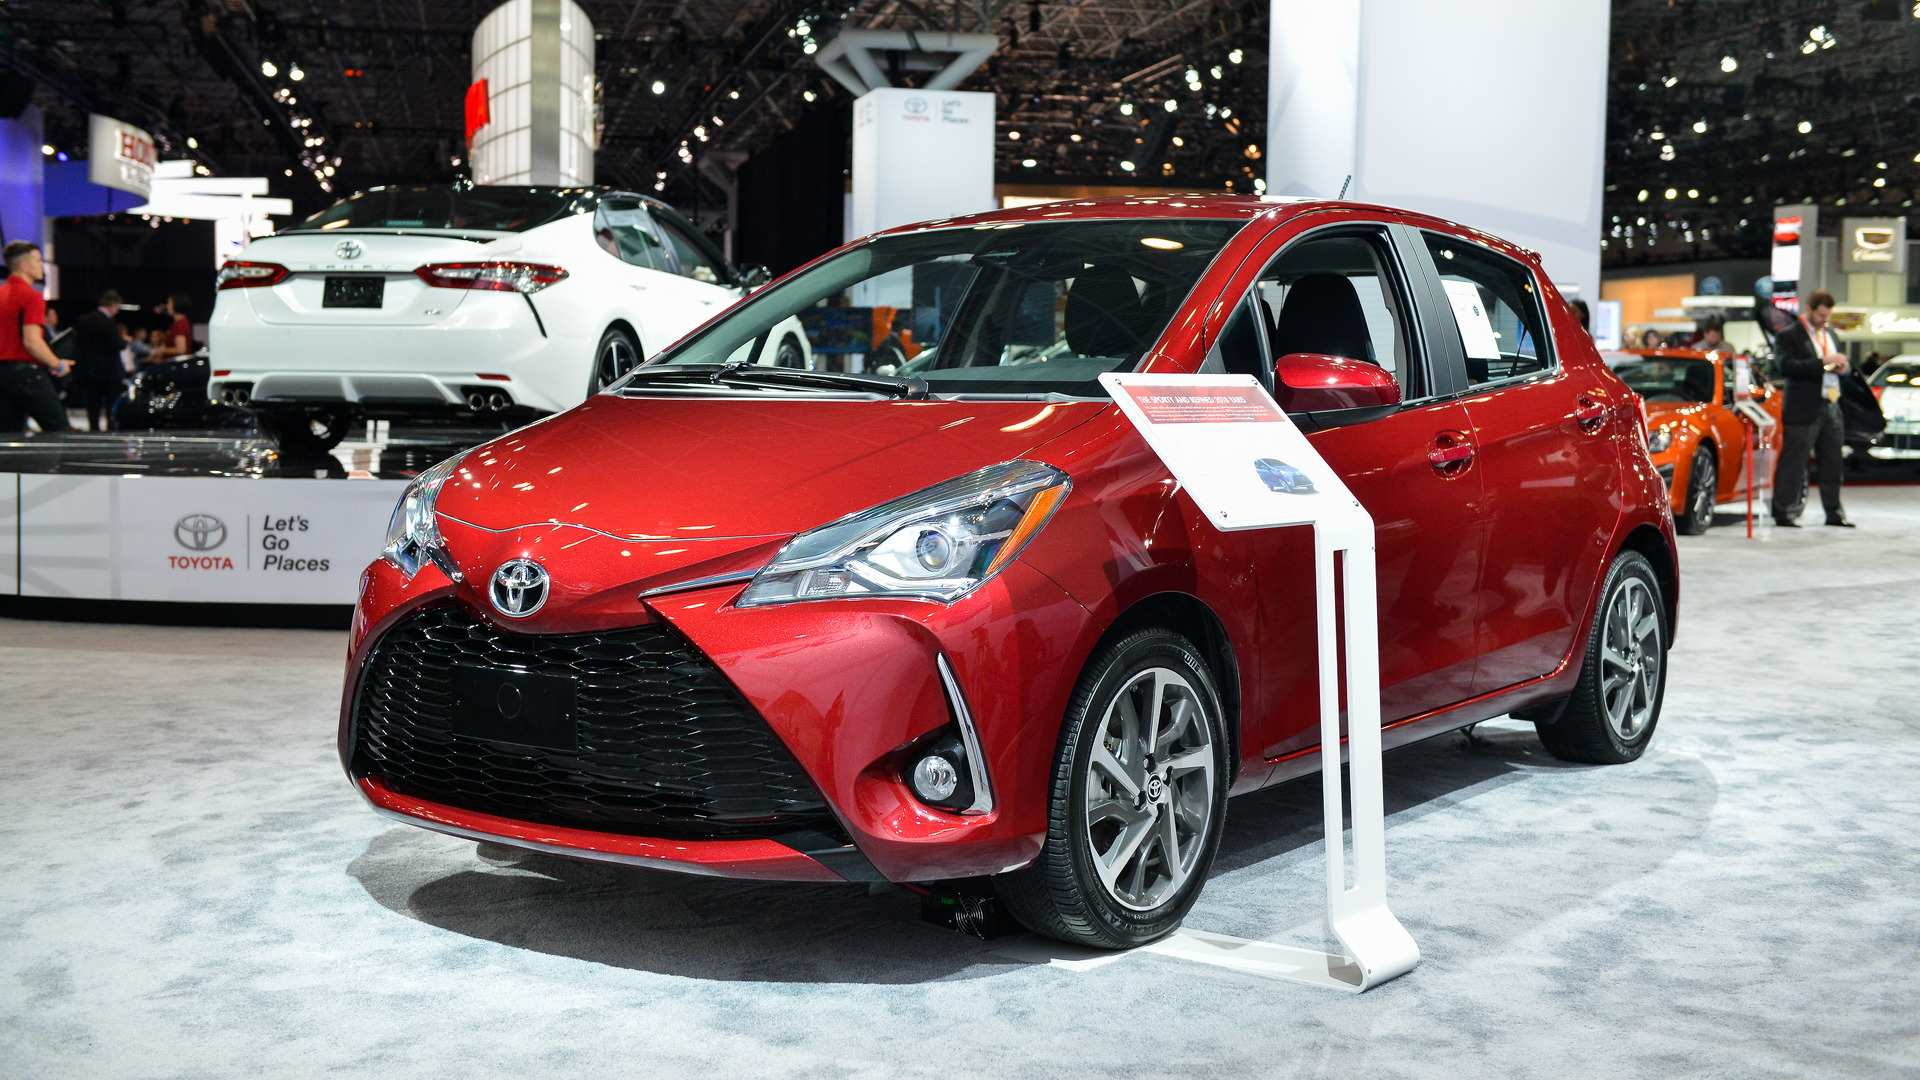 60 New Toyota Yaris 2020 Concept New Concept for Toyota Yaris 2020 Concept